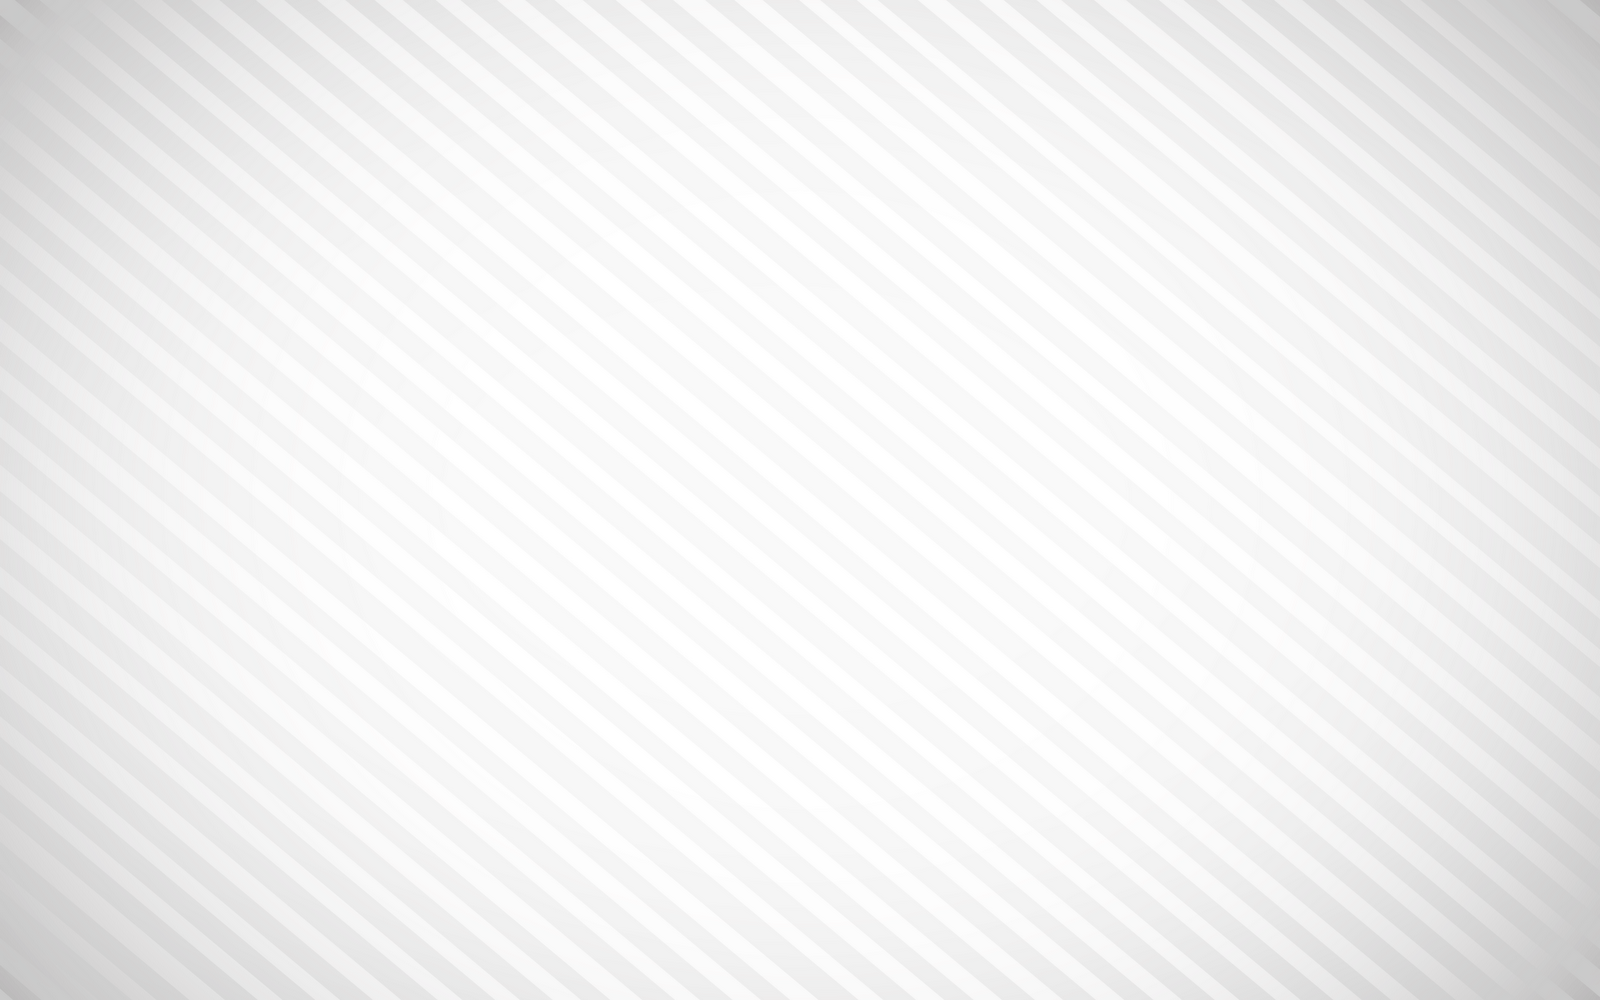 White Abstract Wallpaper Hq Pictures 13 HD Wallpapers lzamgs 1600x1000